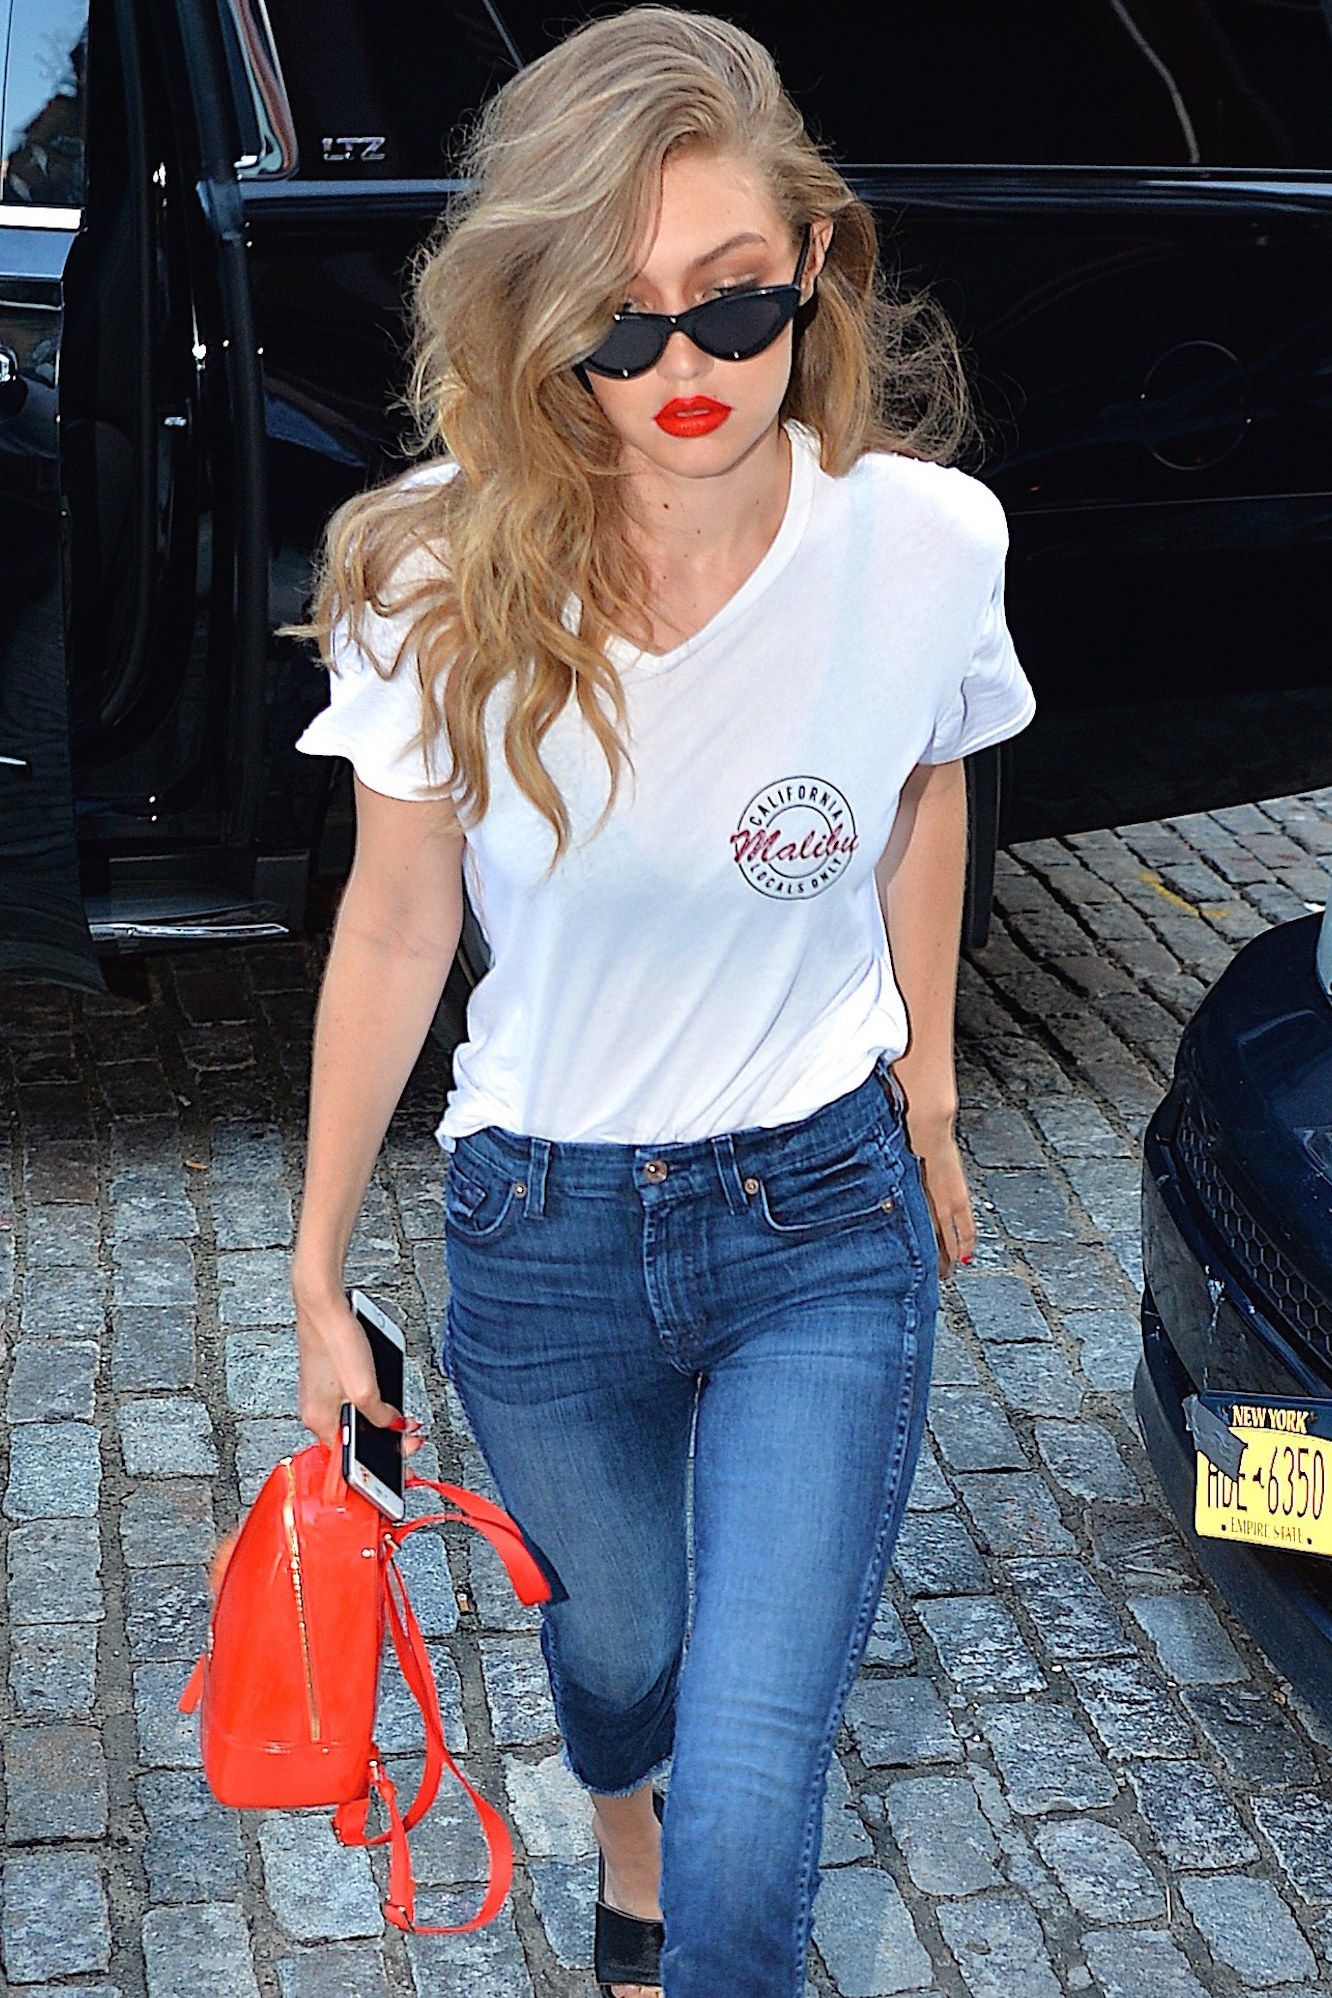 721d555a7 Gigi Hadid's ADORABLE Backpack Is the Only Back-to-School ...